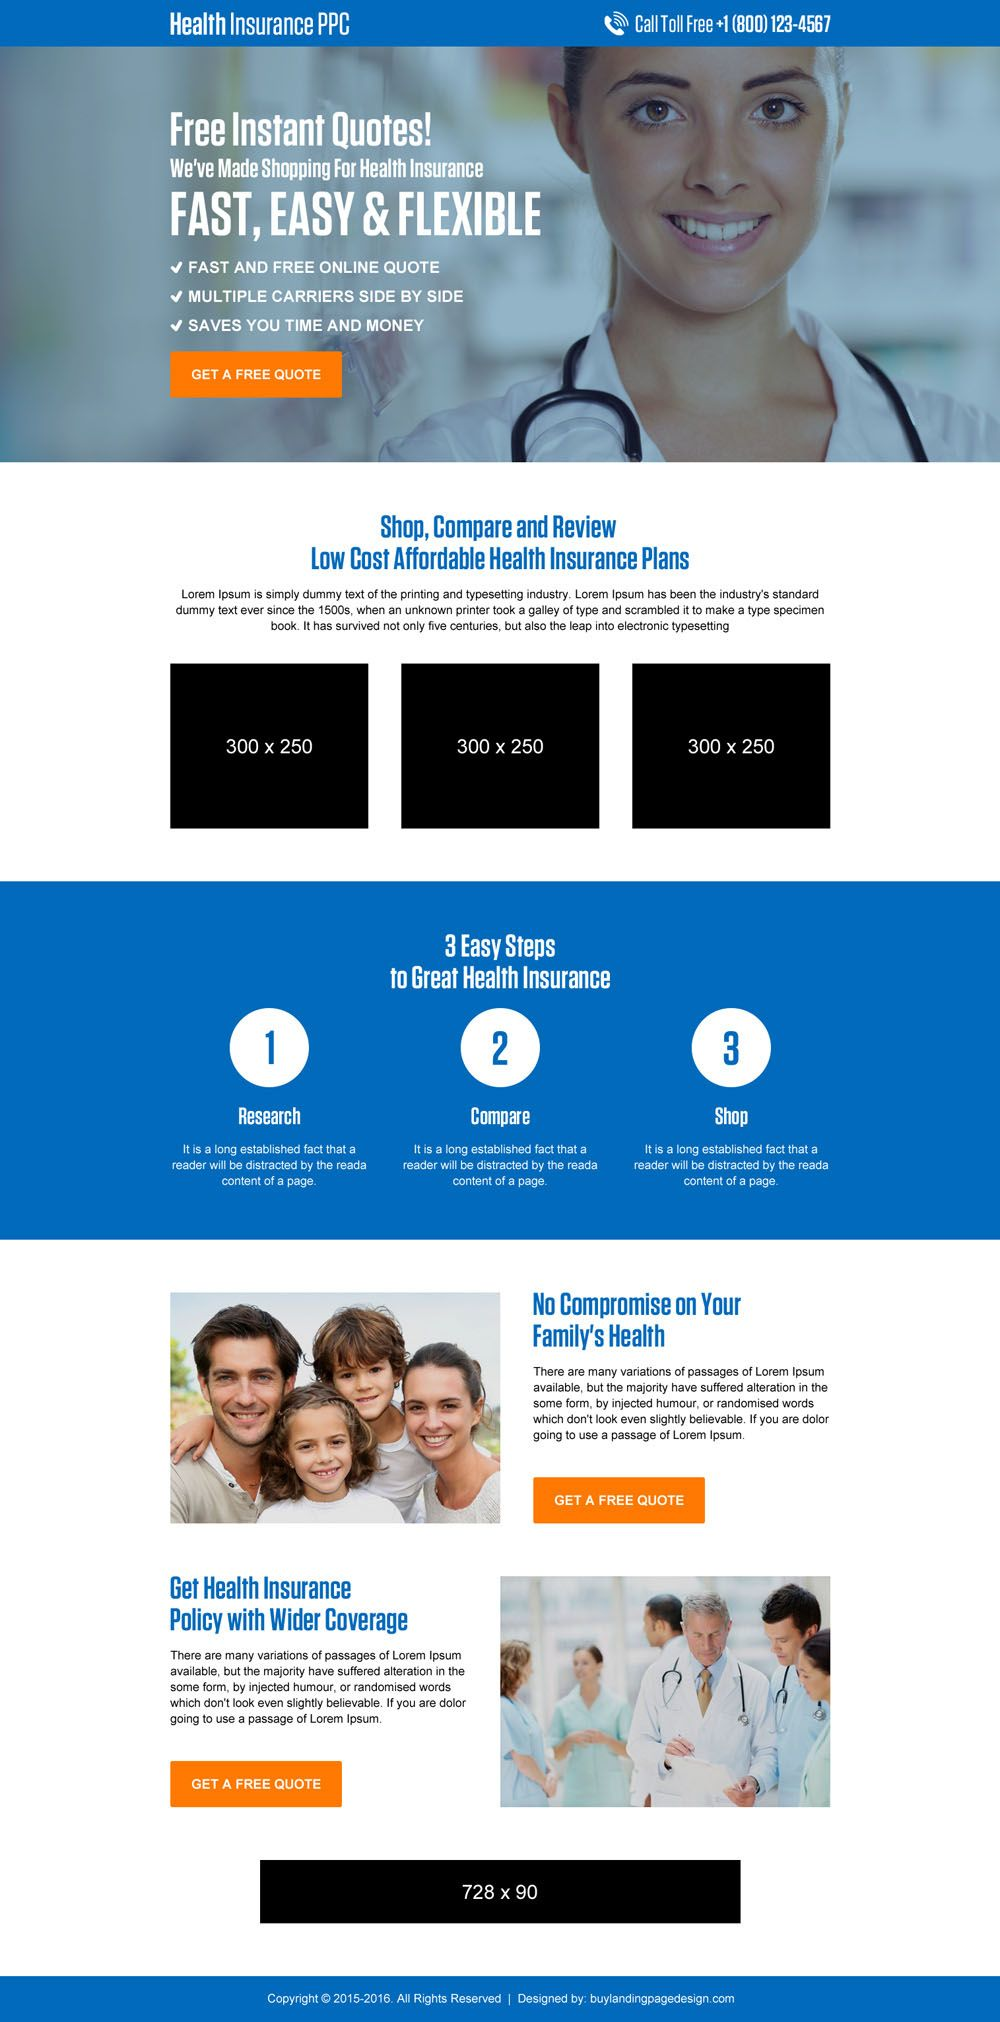 Health Insurance Instant Free Quote Lead Generating Landing Page